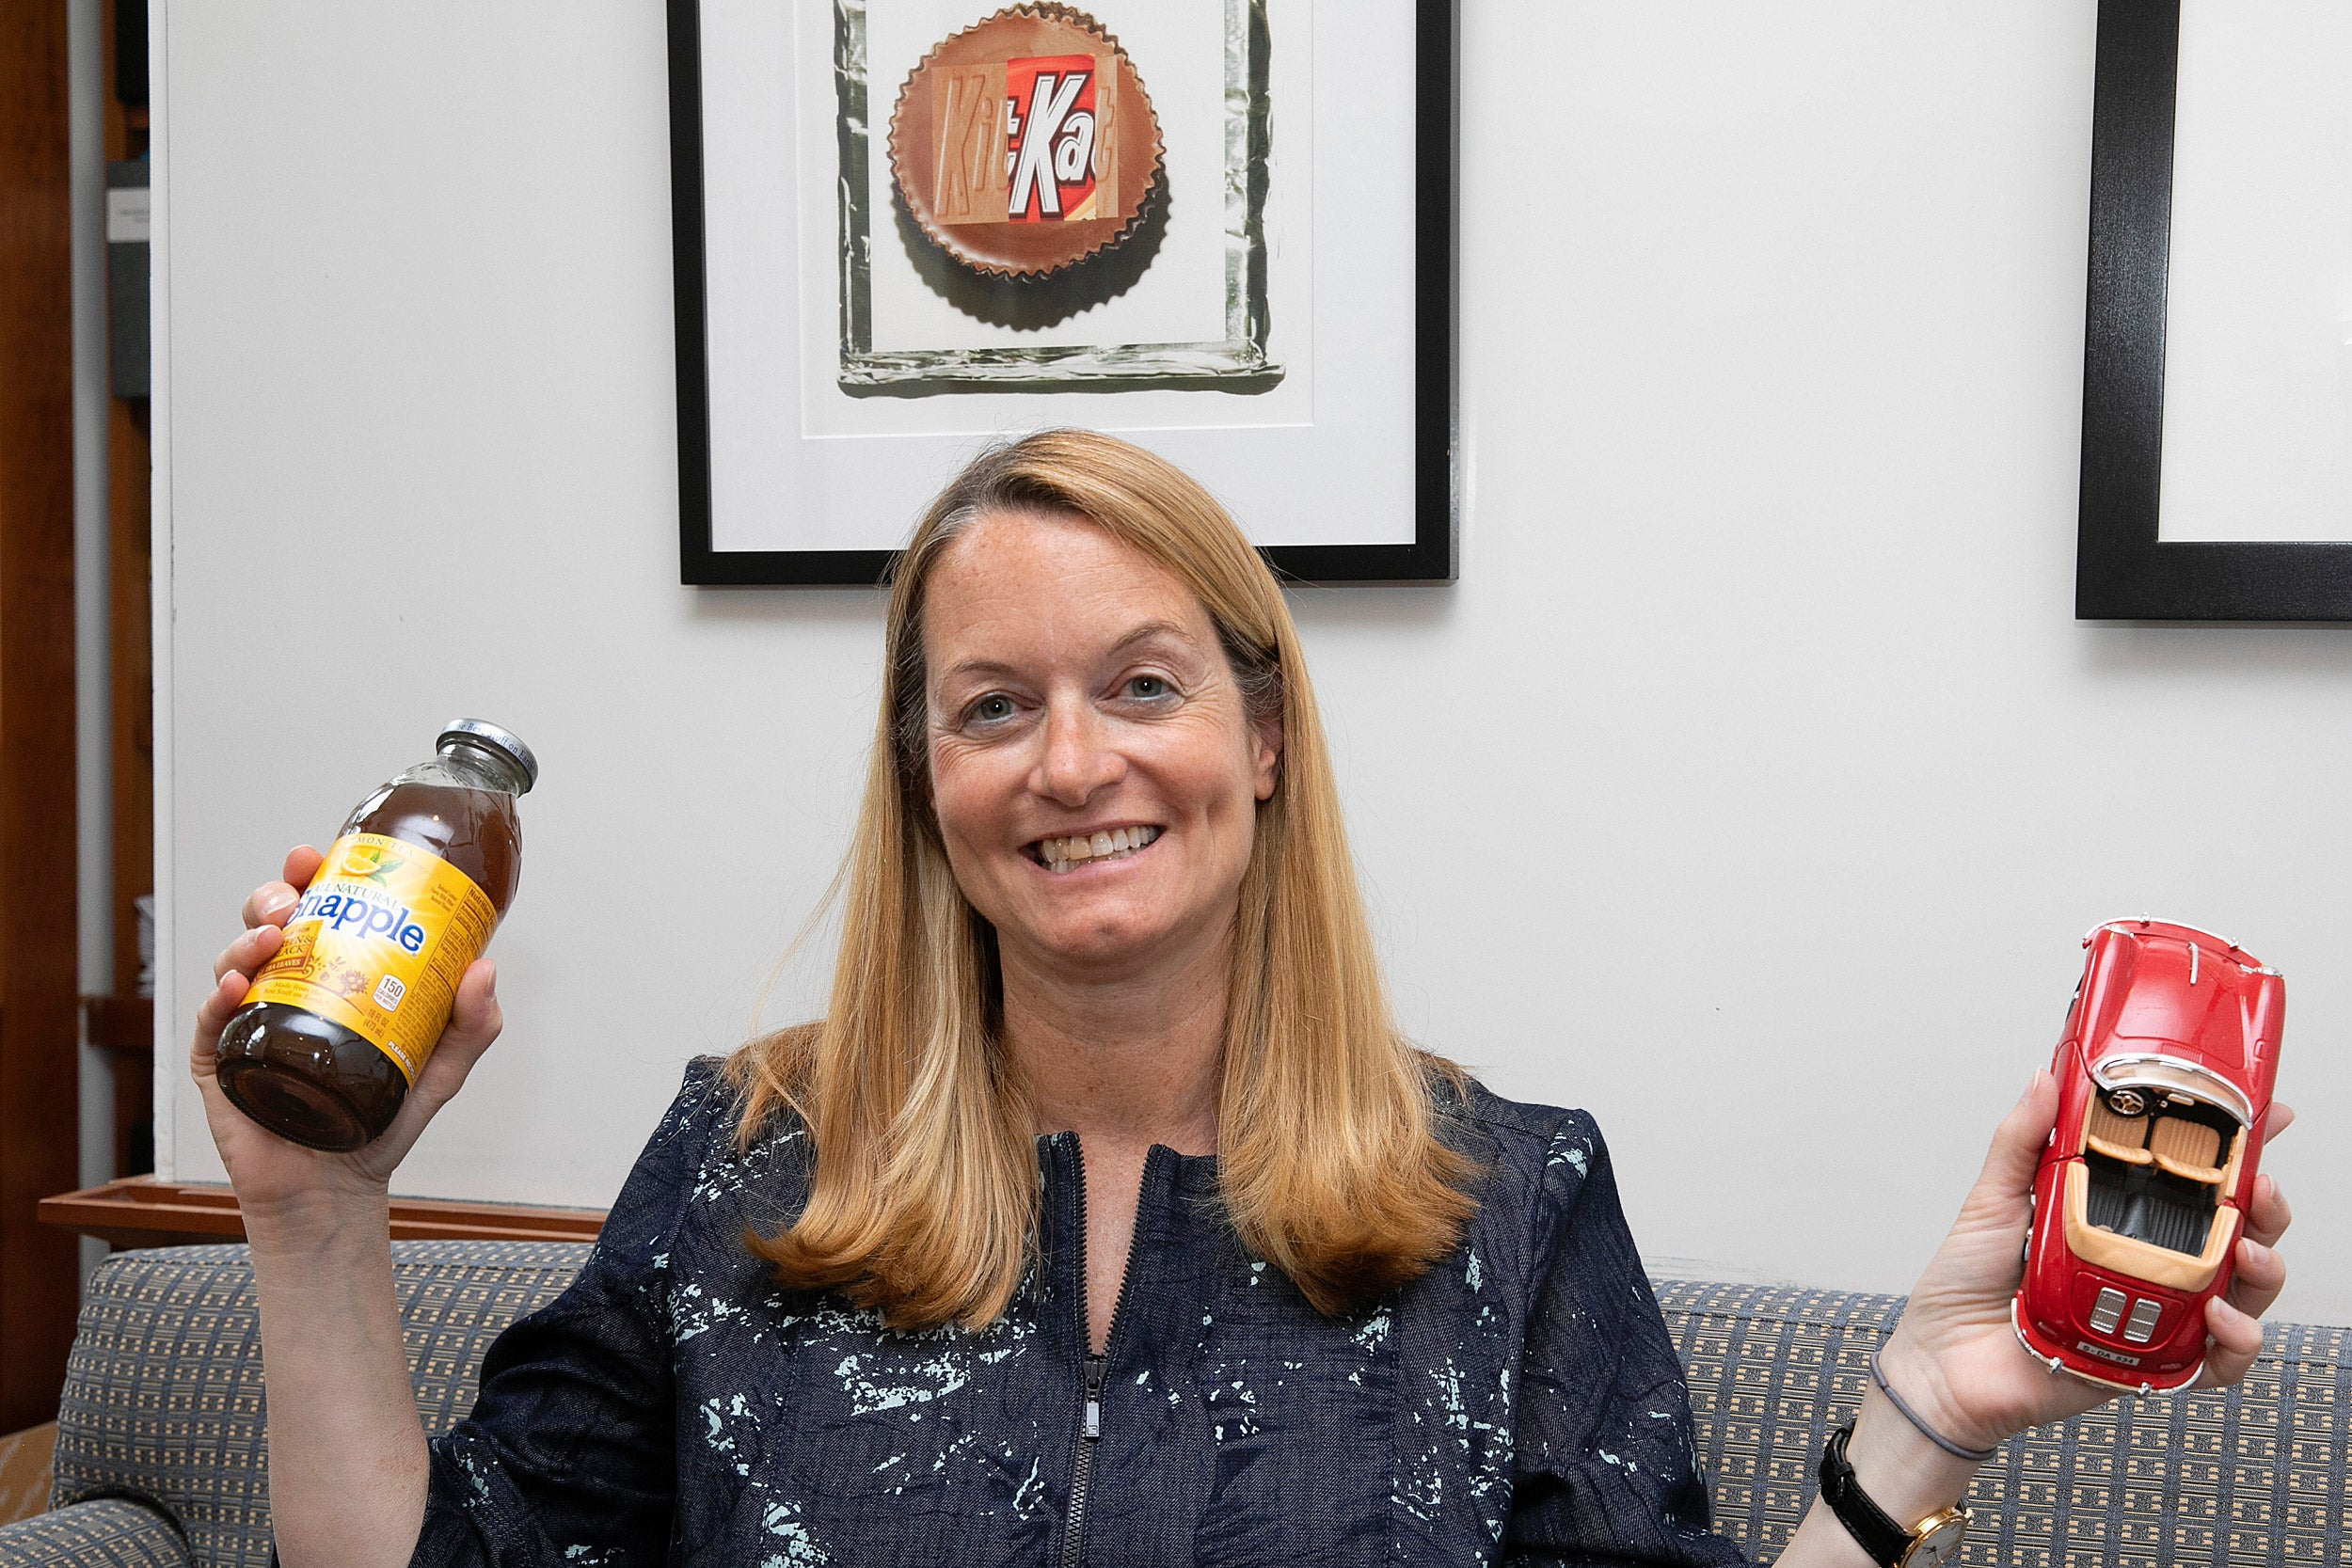 Jill Avery holds a toy car and a bottle of Snapple.